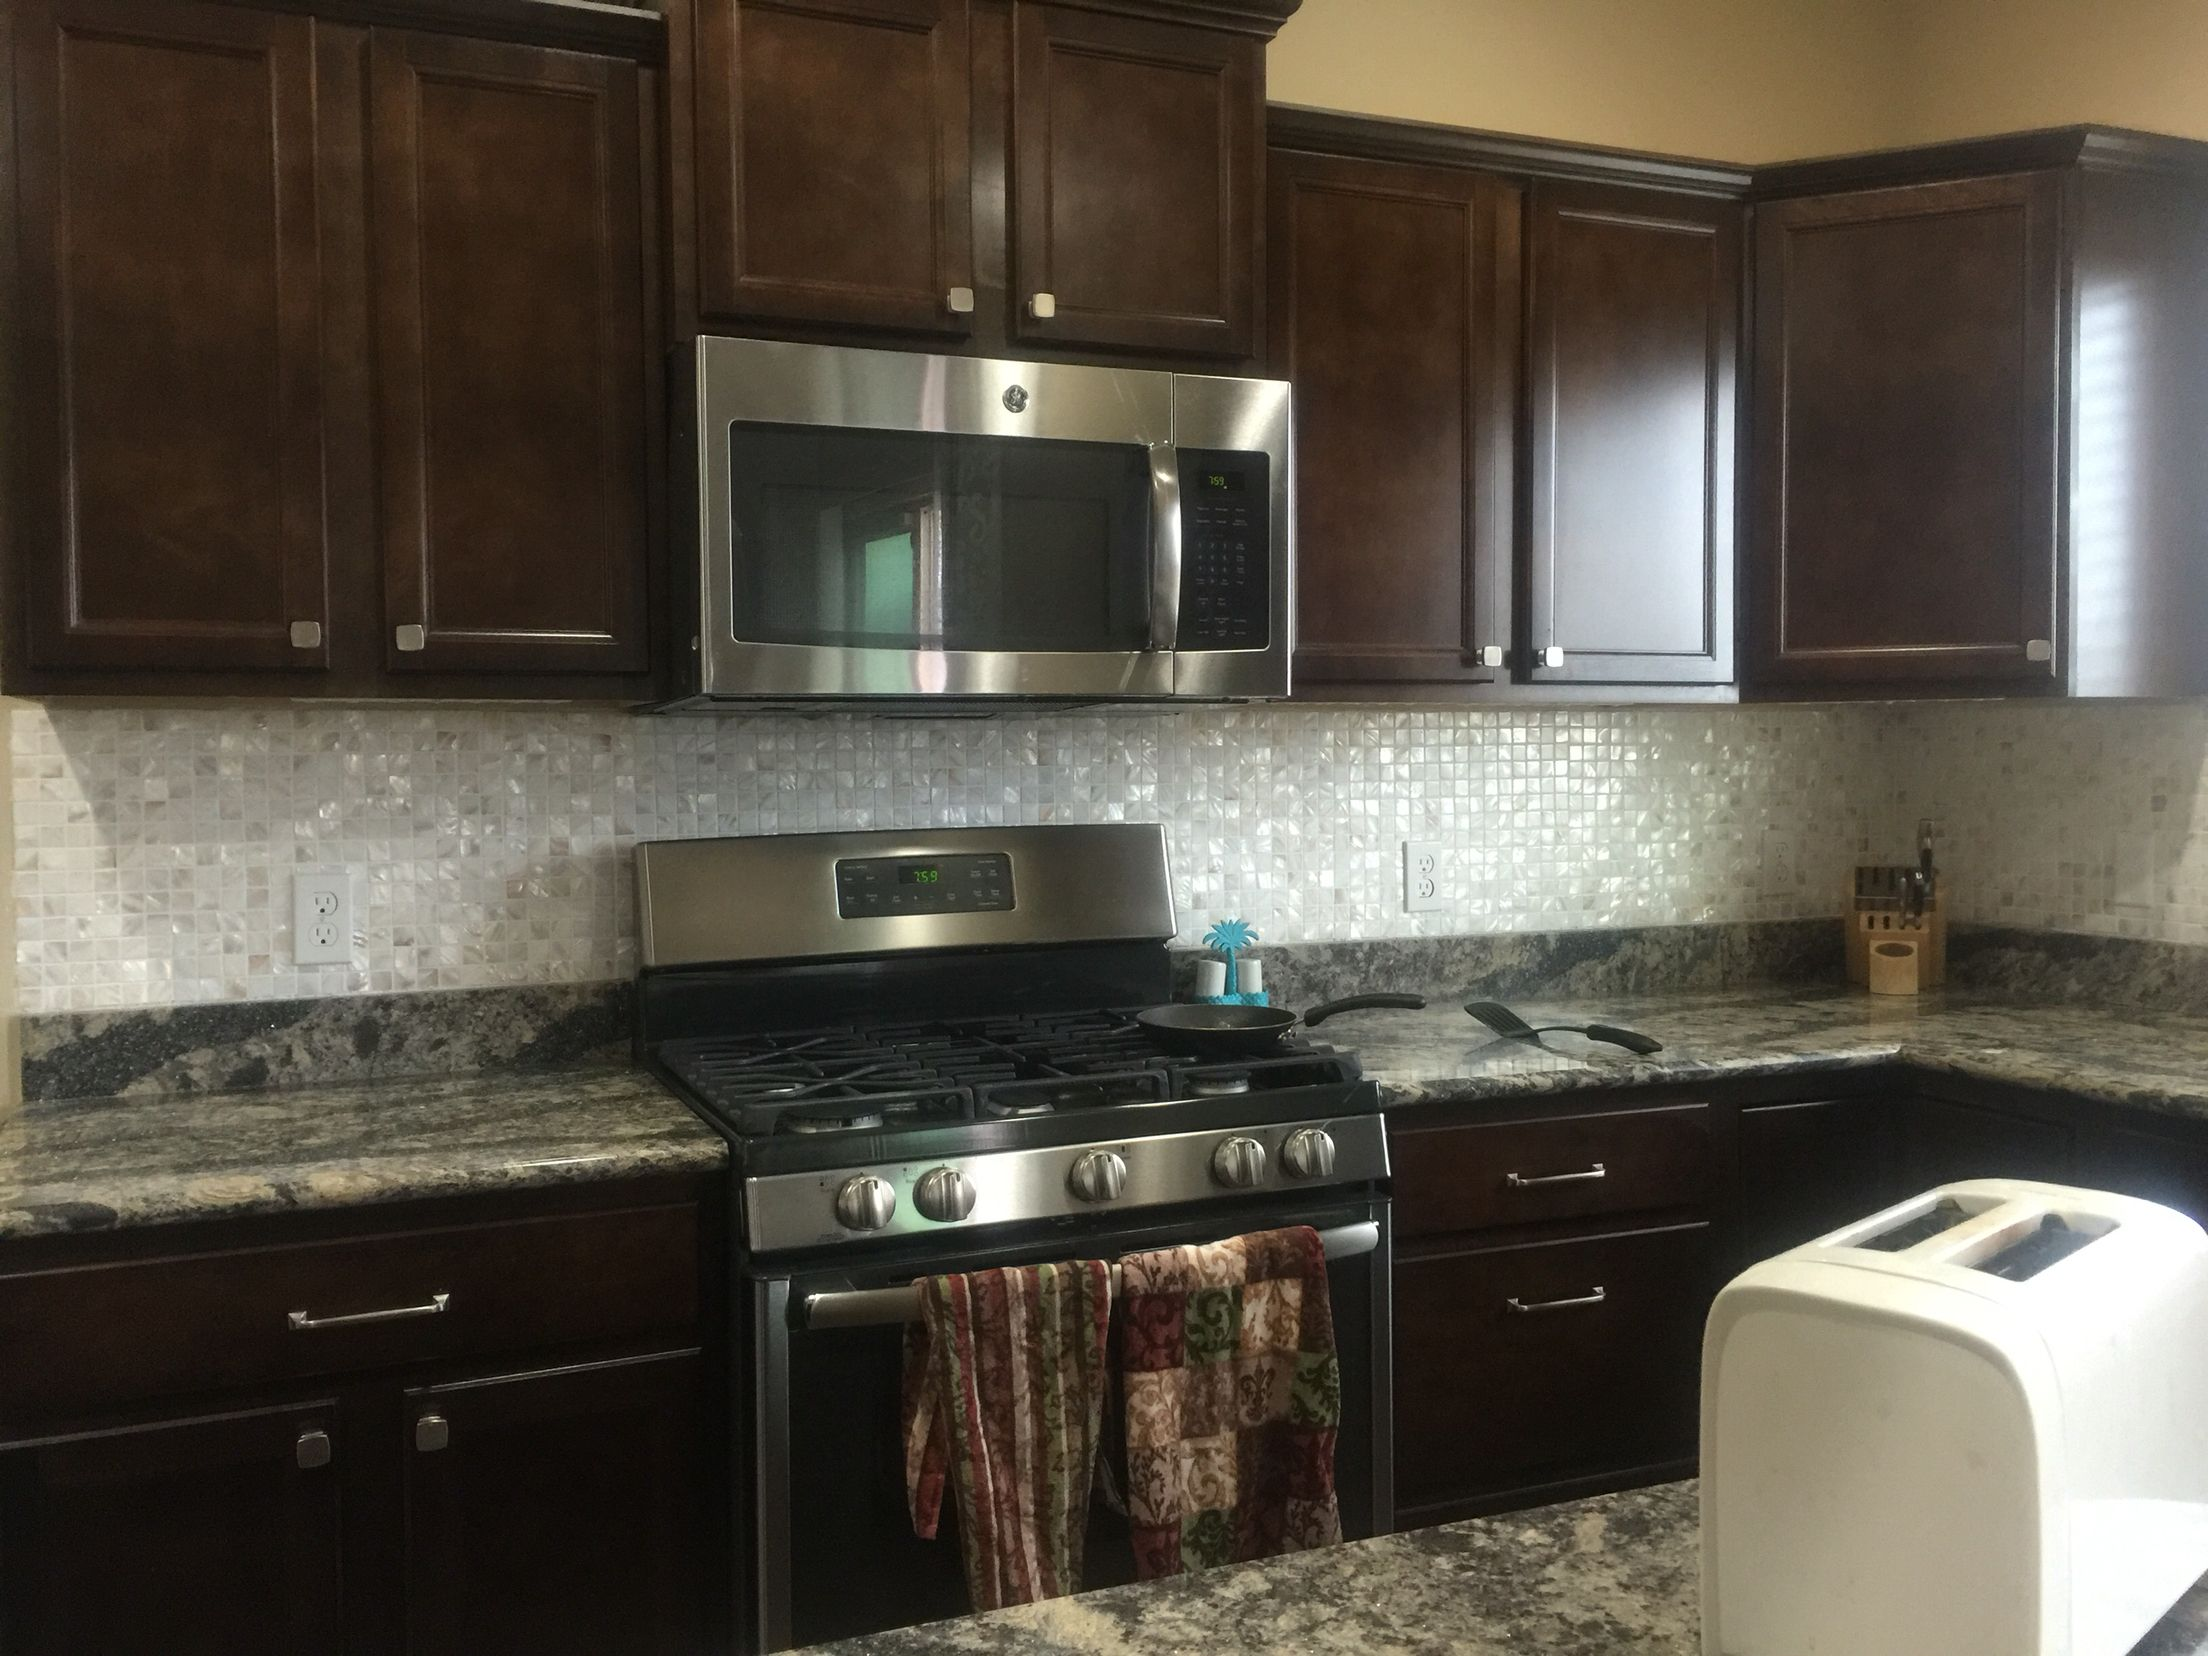 dark cabinets and dyi mother of pearl kitchen backsplash - Kitchen Backsplash With Dark Cabinets